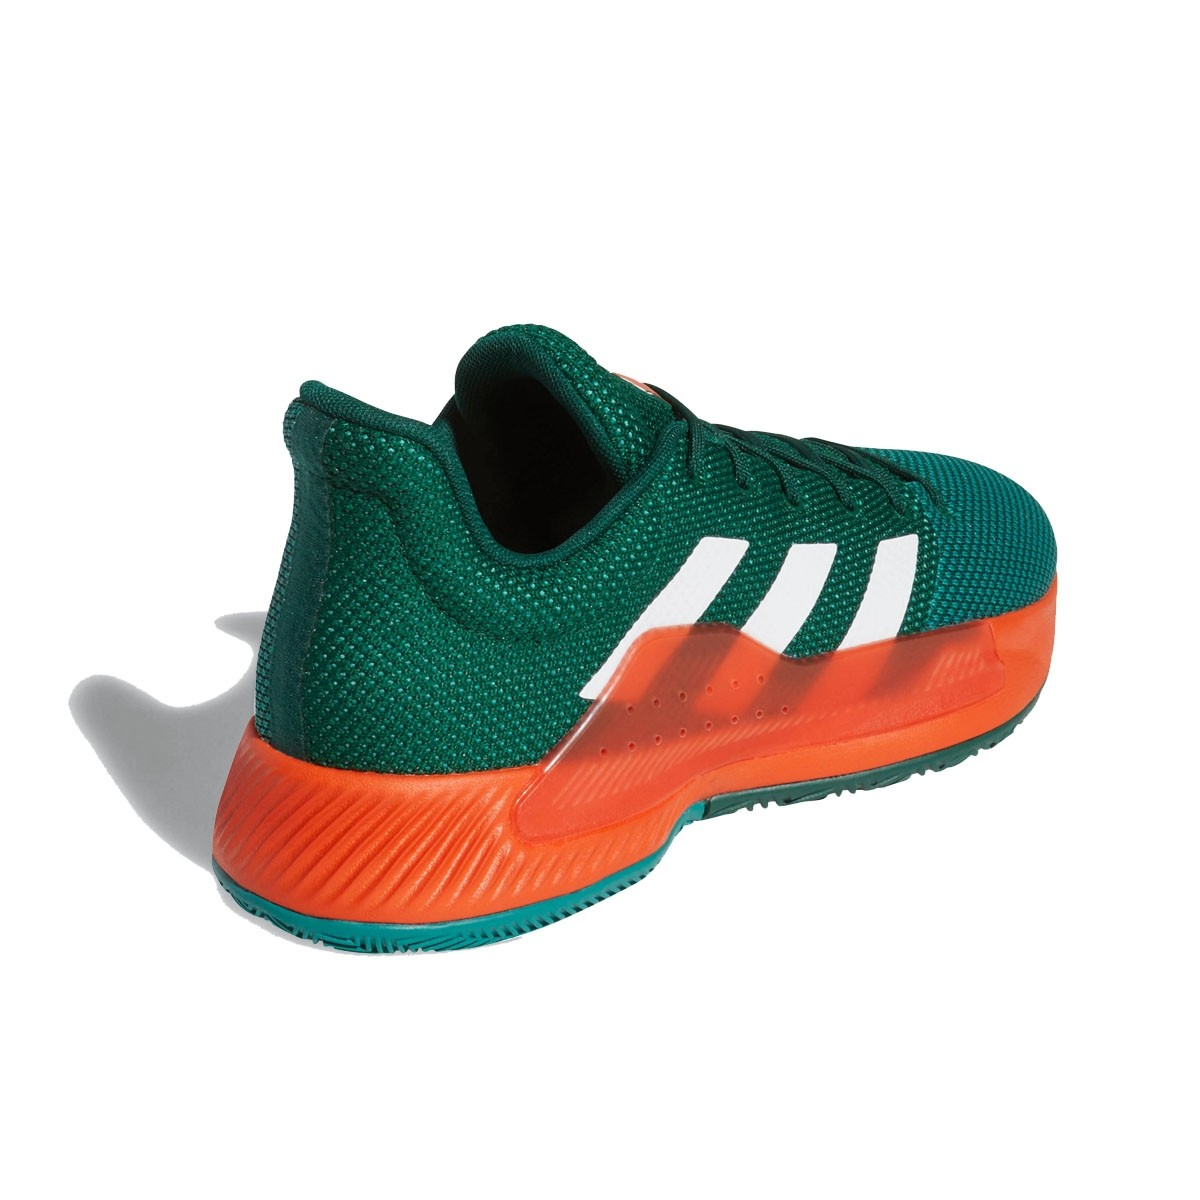 ADIDAS Pro Bounce Madness Low 'UM' BB9226